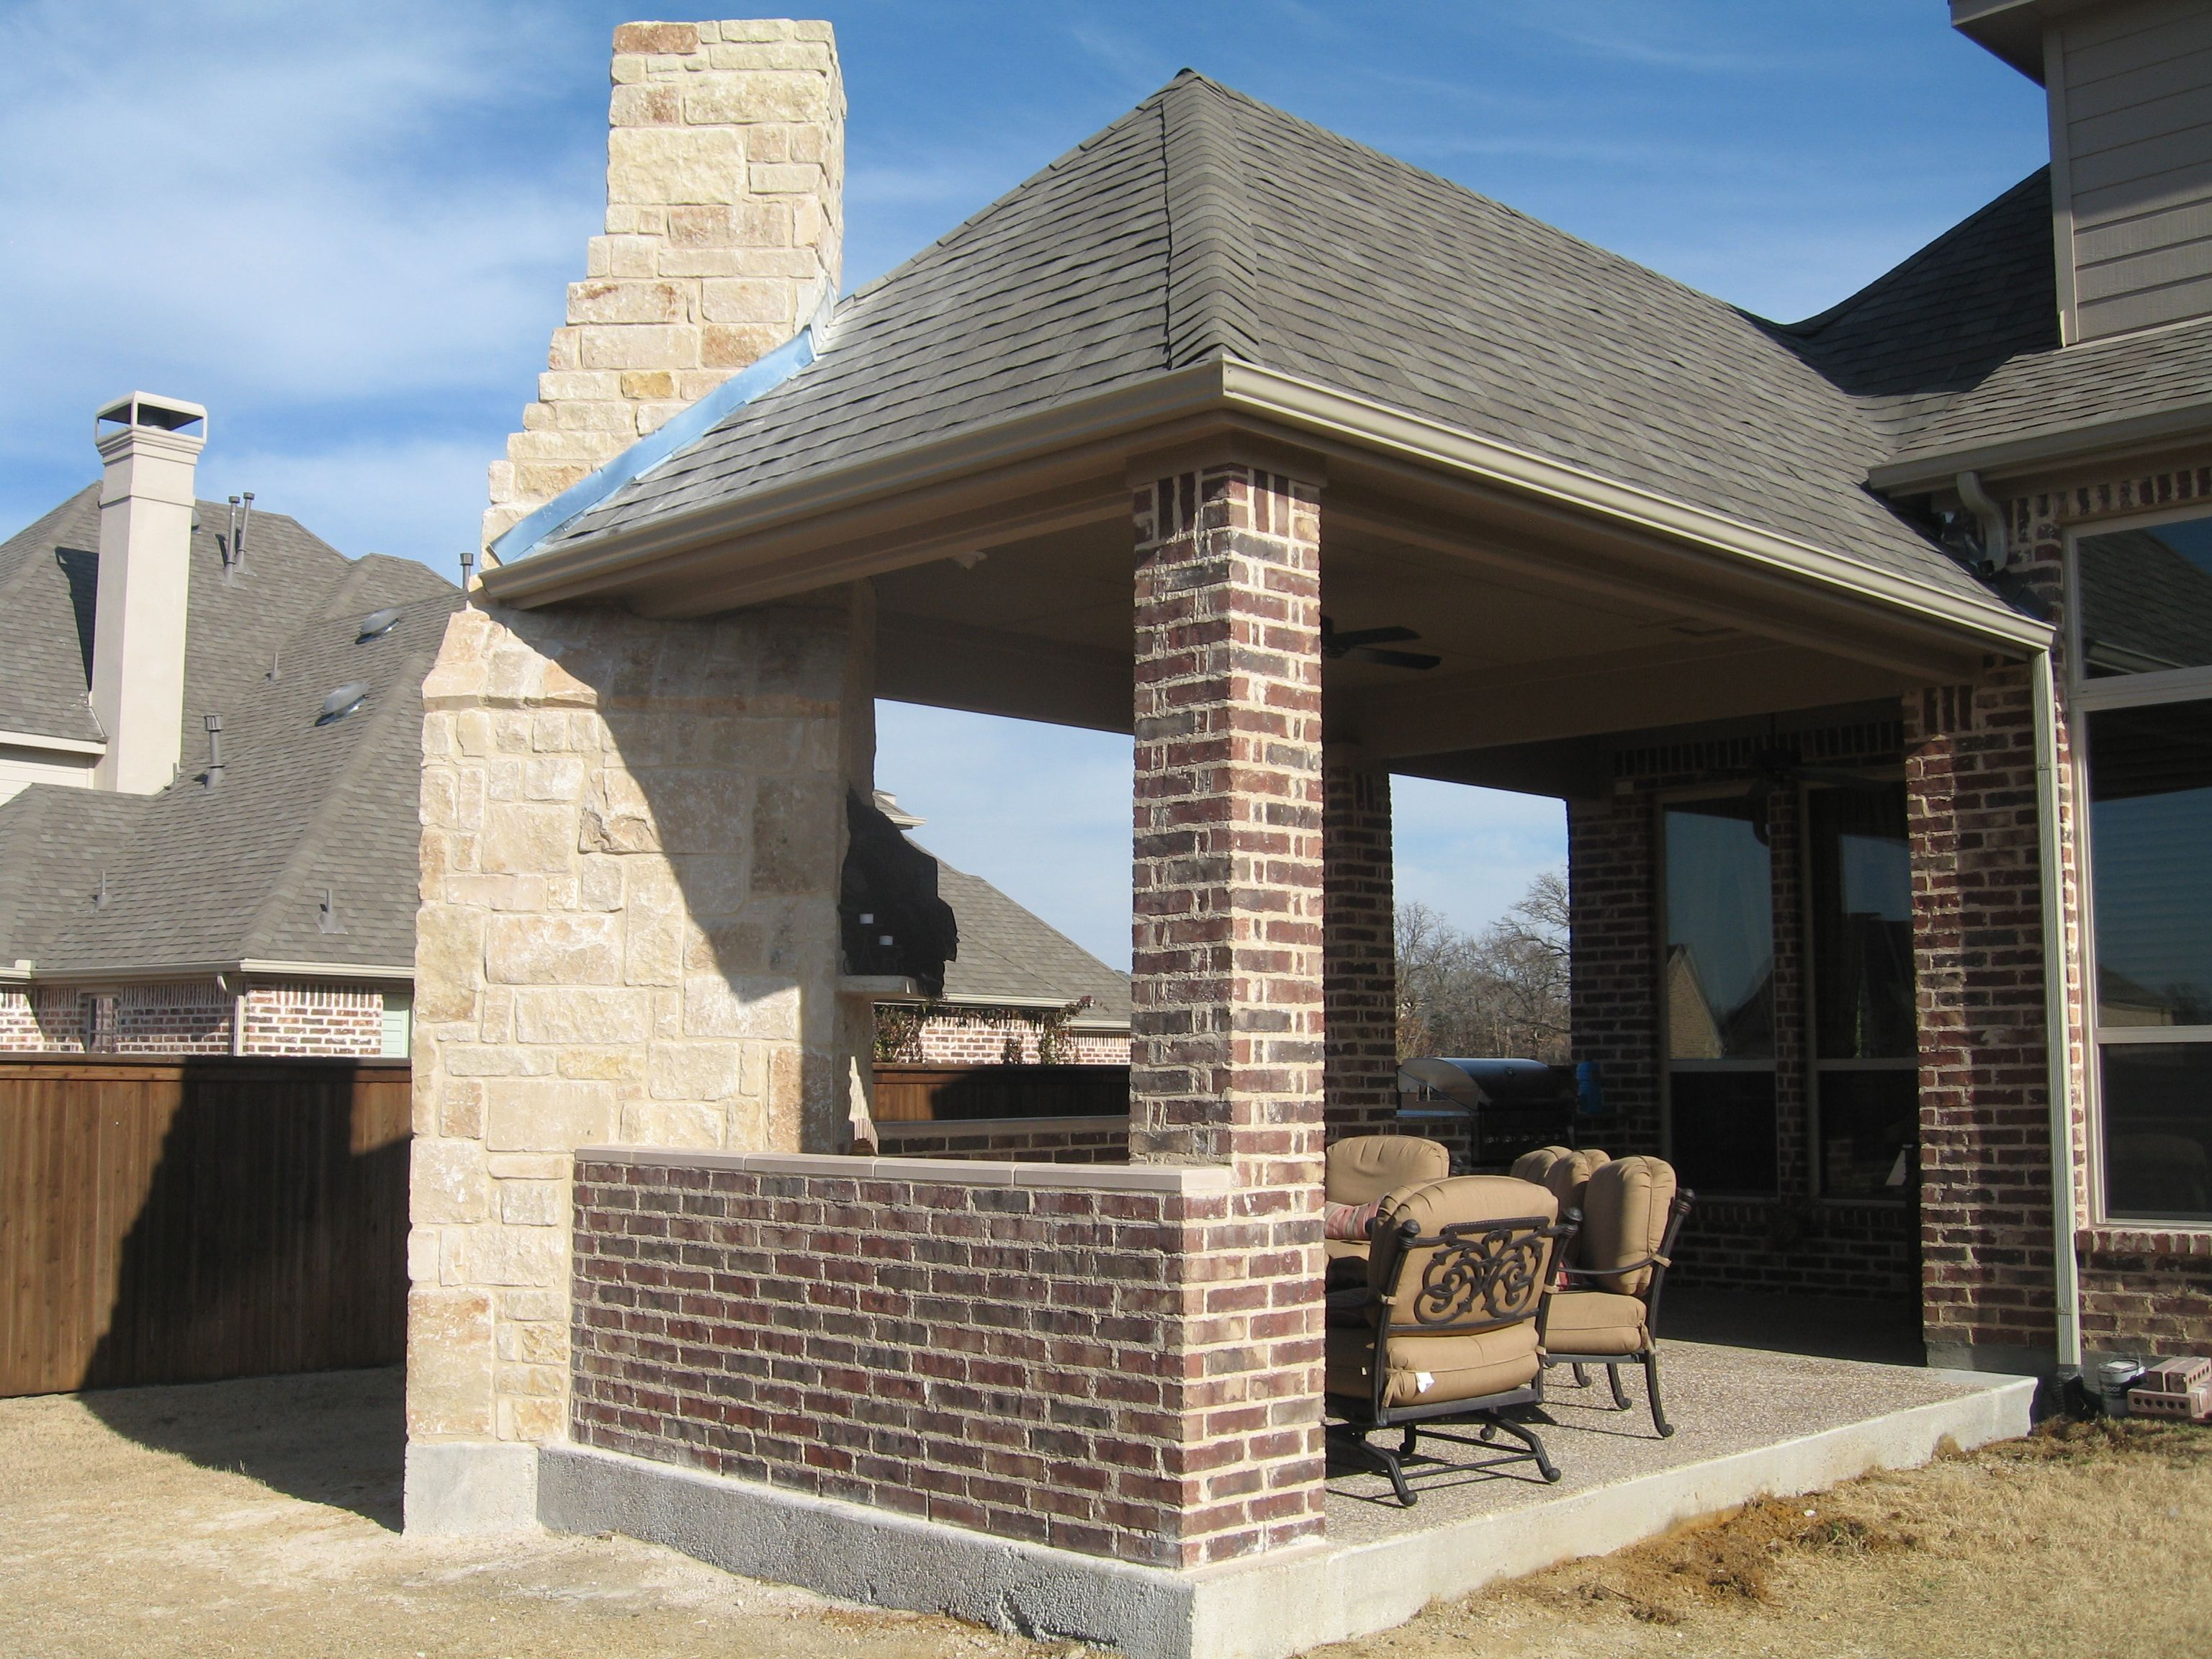 Outdoor Patio Kitchen Fabulous Brick Column And Fences Also Cool Outdoor Kitchen And